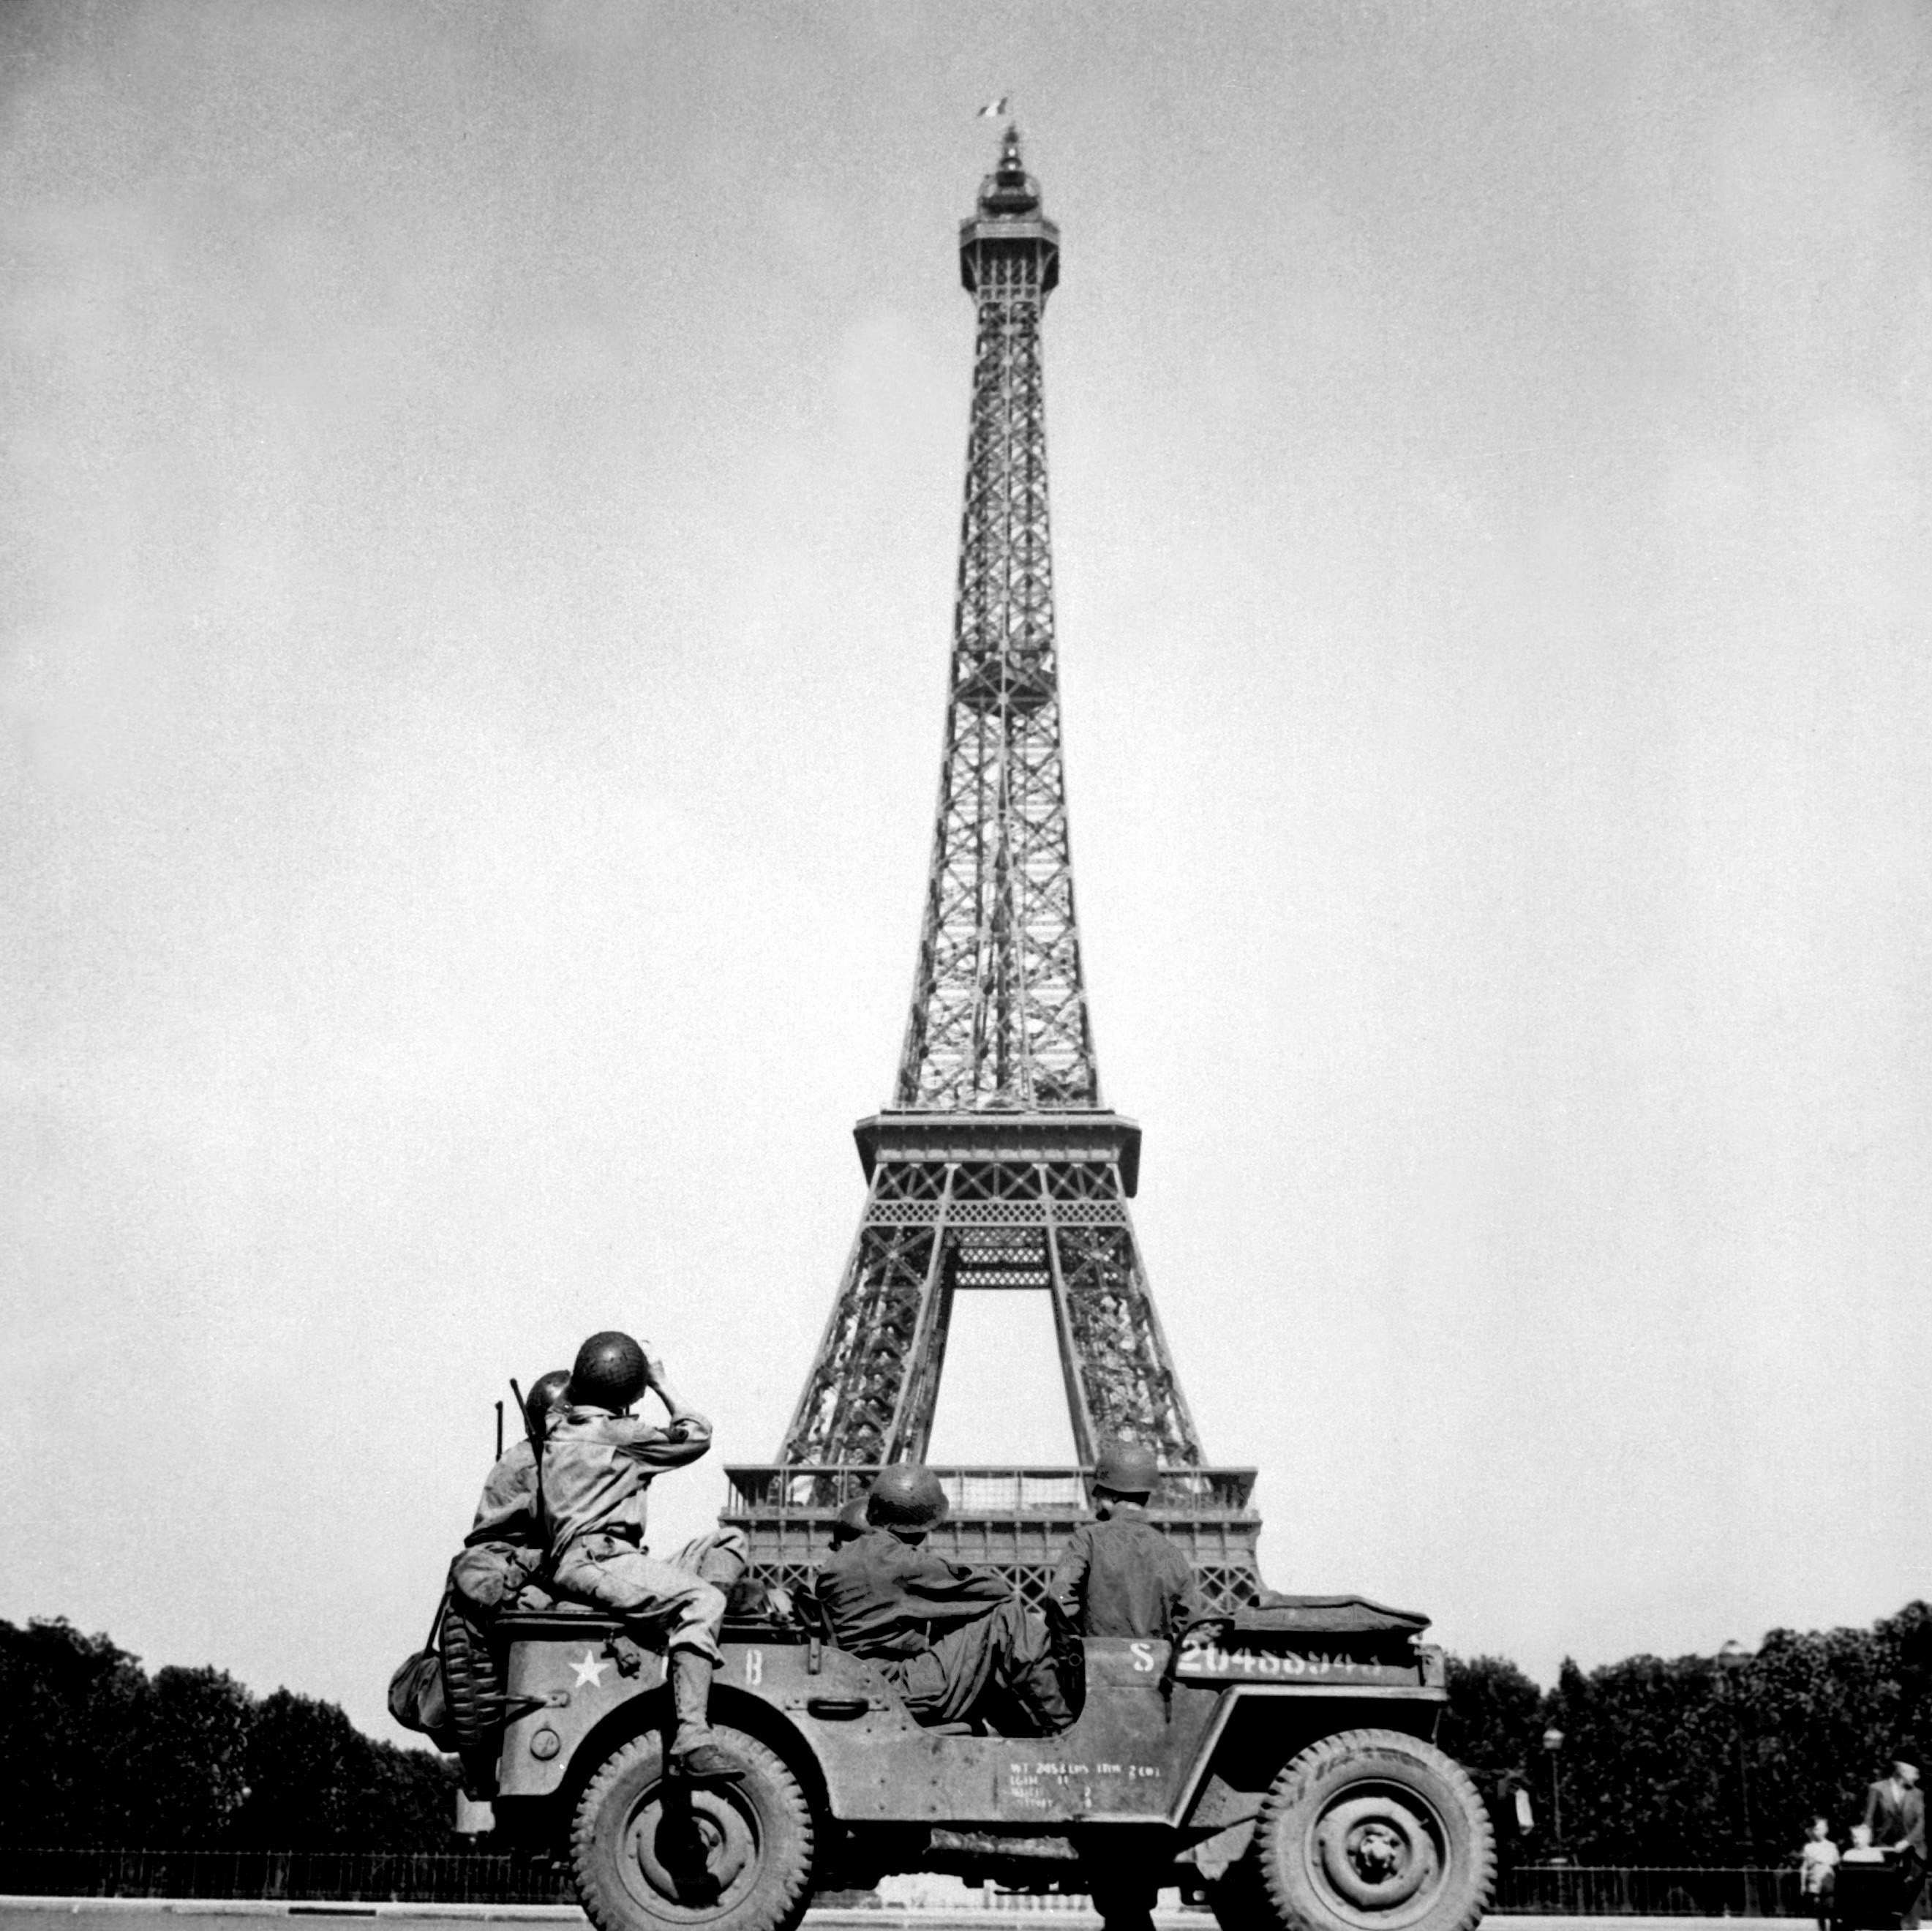 Of The 4th US Infantry Division Look At Eiffel Tower In Paris After French Capital Had Been Liberated On August 25 1944 HD SN 99 02717